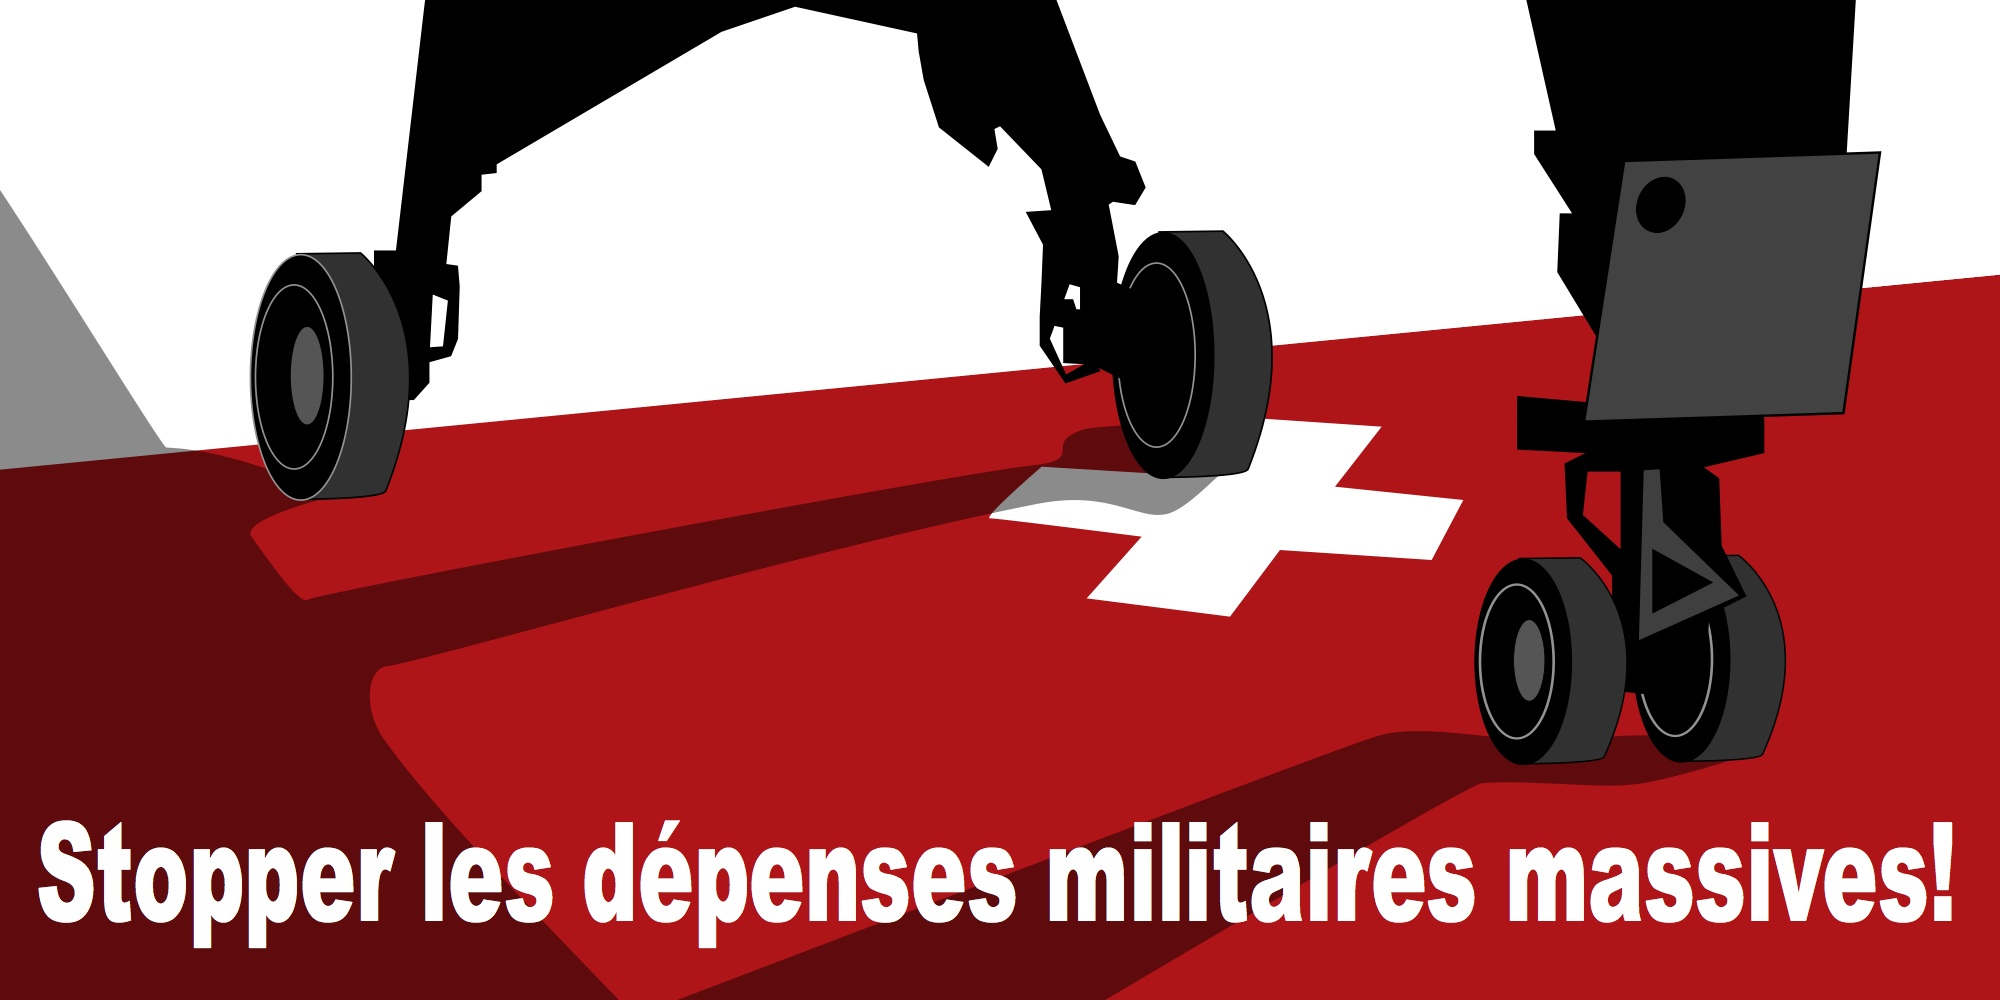 Stopper les dépenses militaires massives ! [Version campagne anti-immigration]